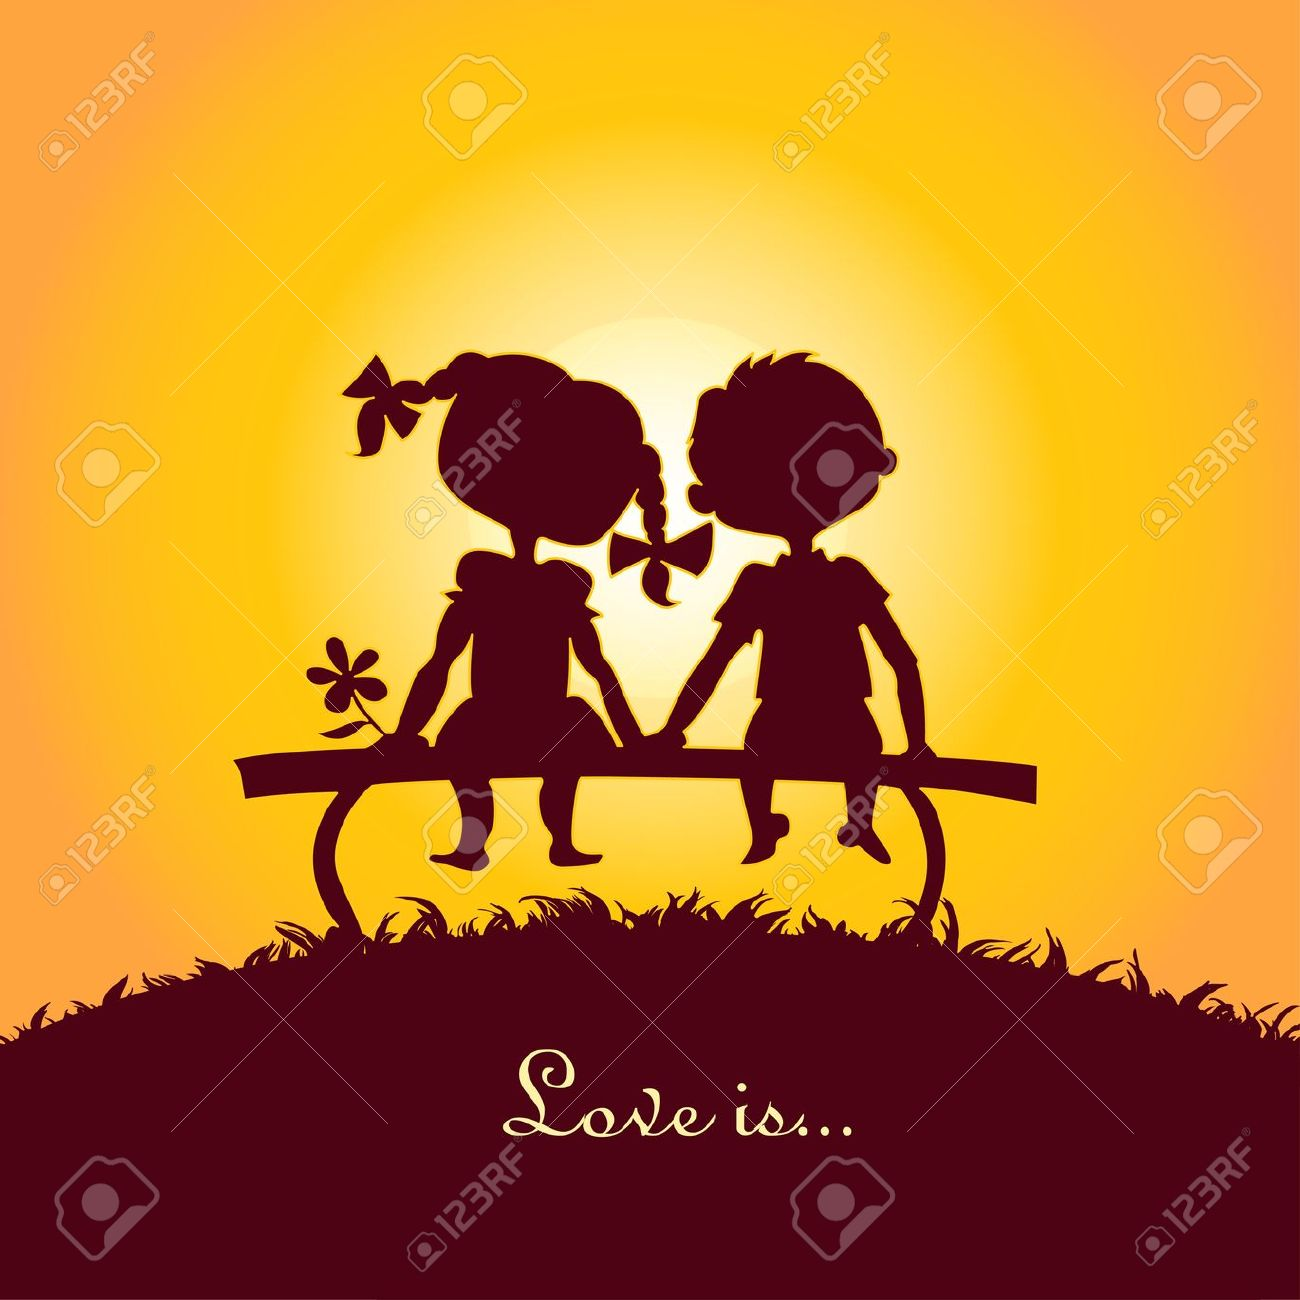 Girl And Boy Sitting Together Clipart.